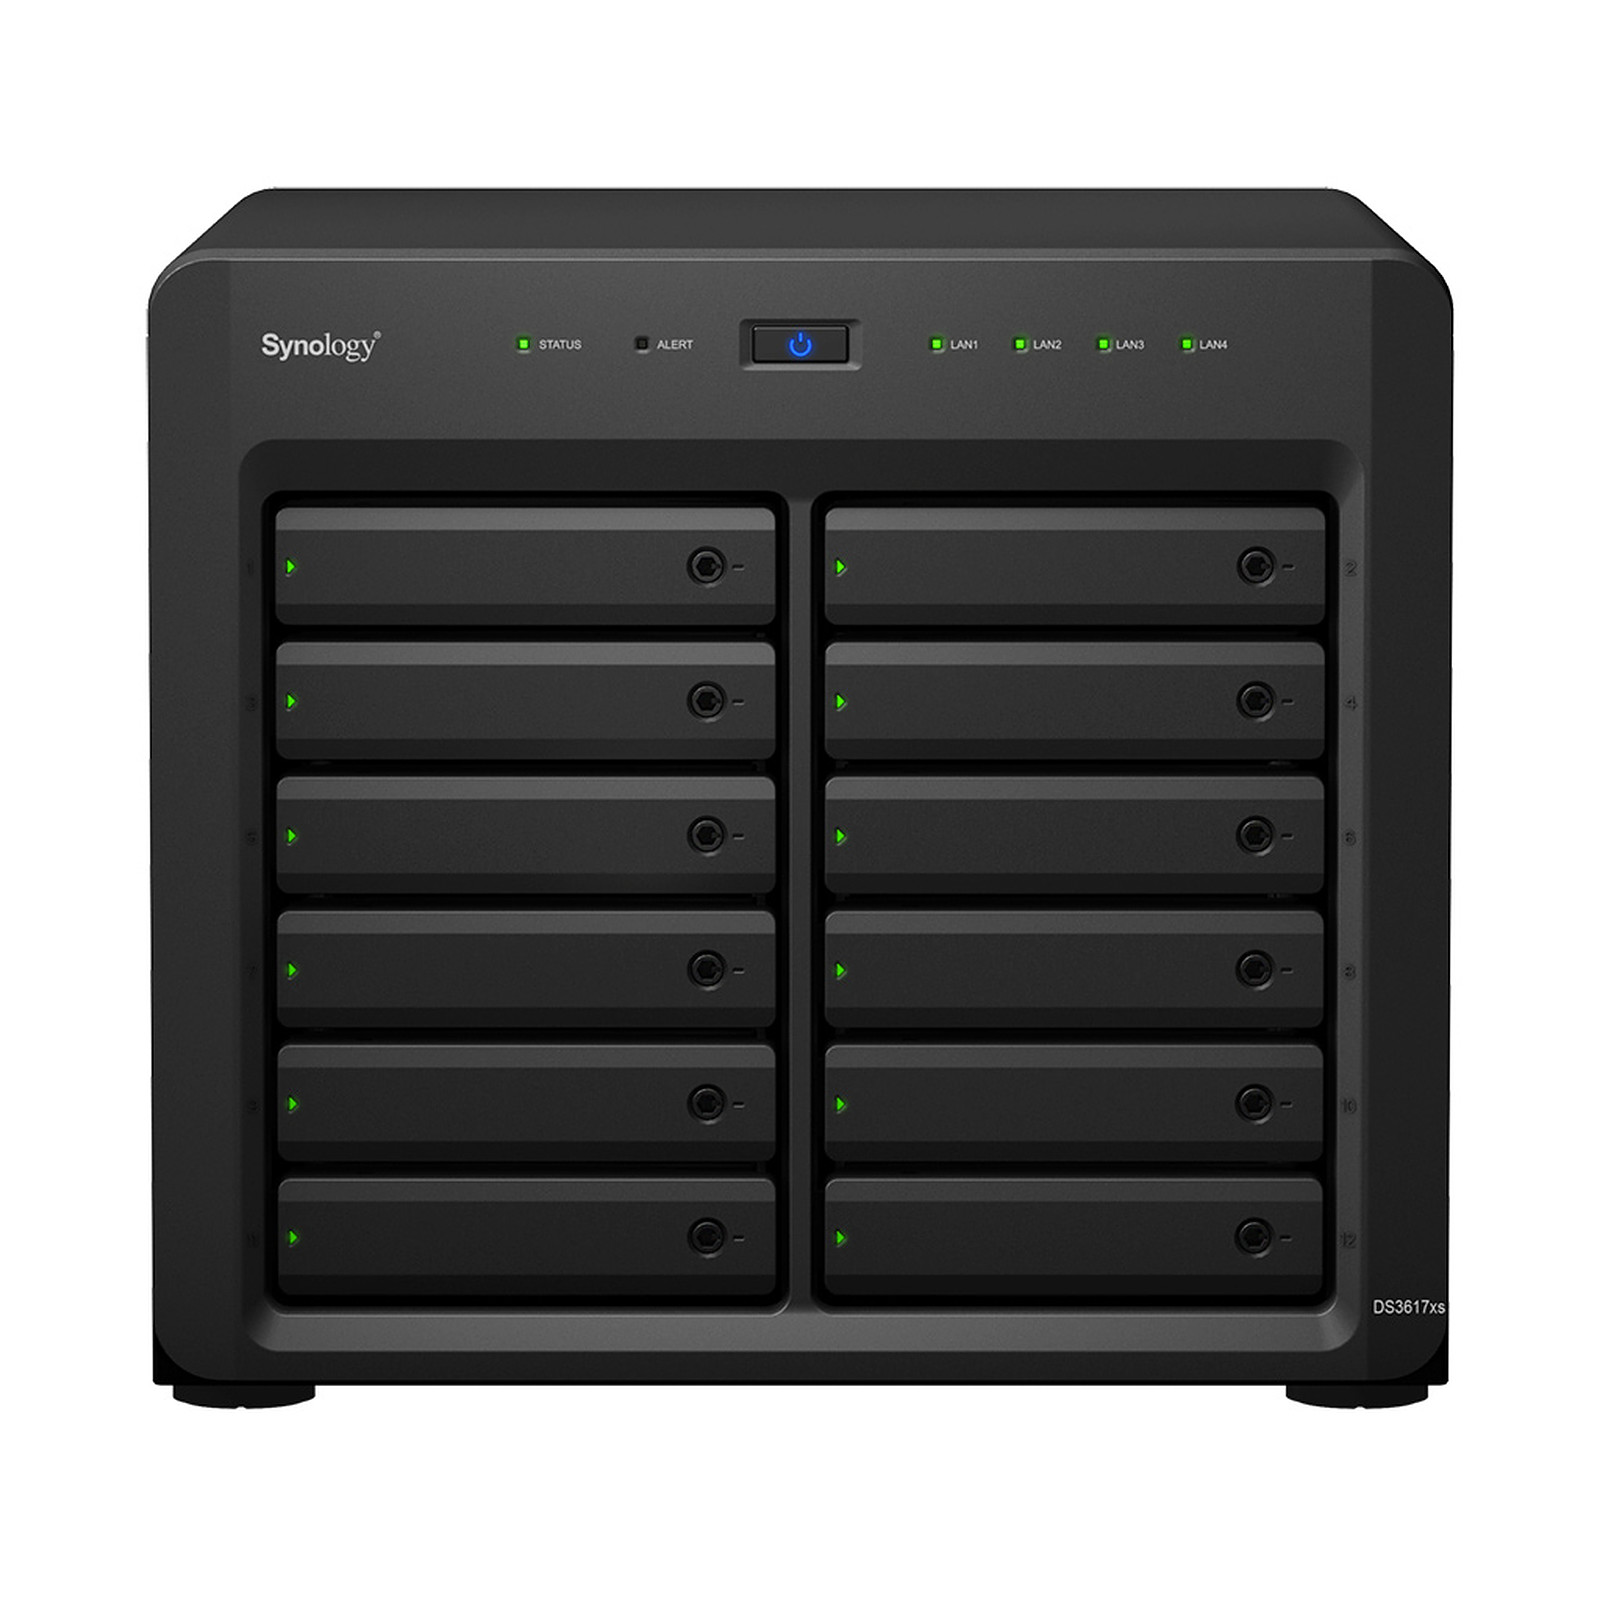 Synology DiskStation DS3617xs